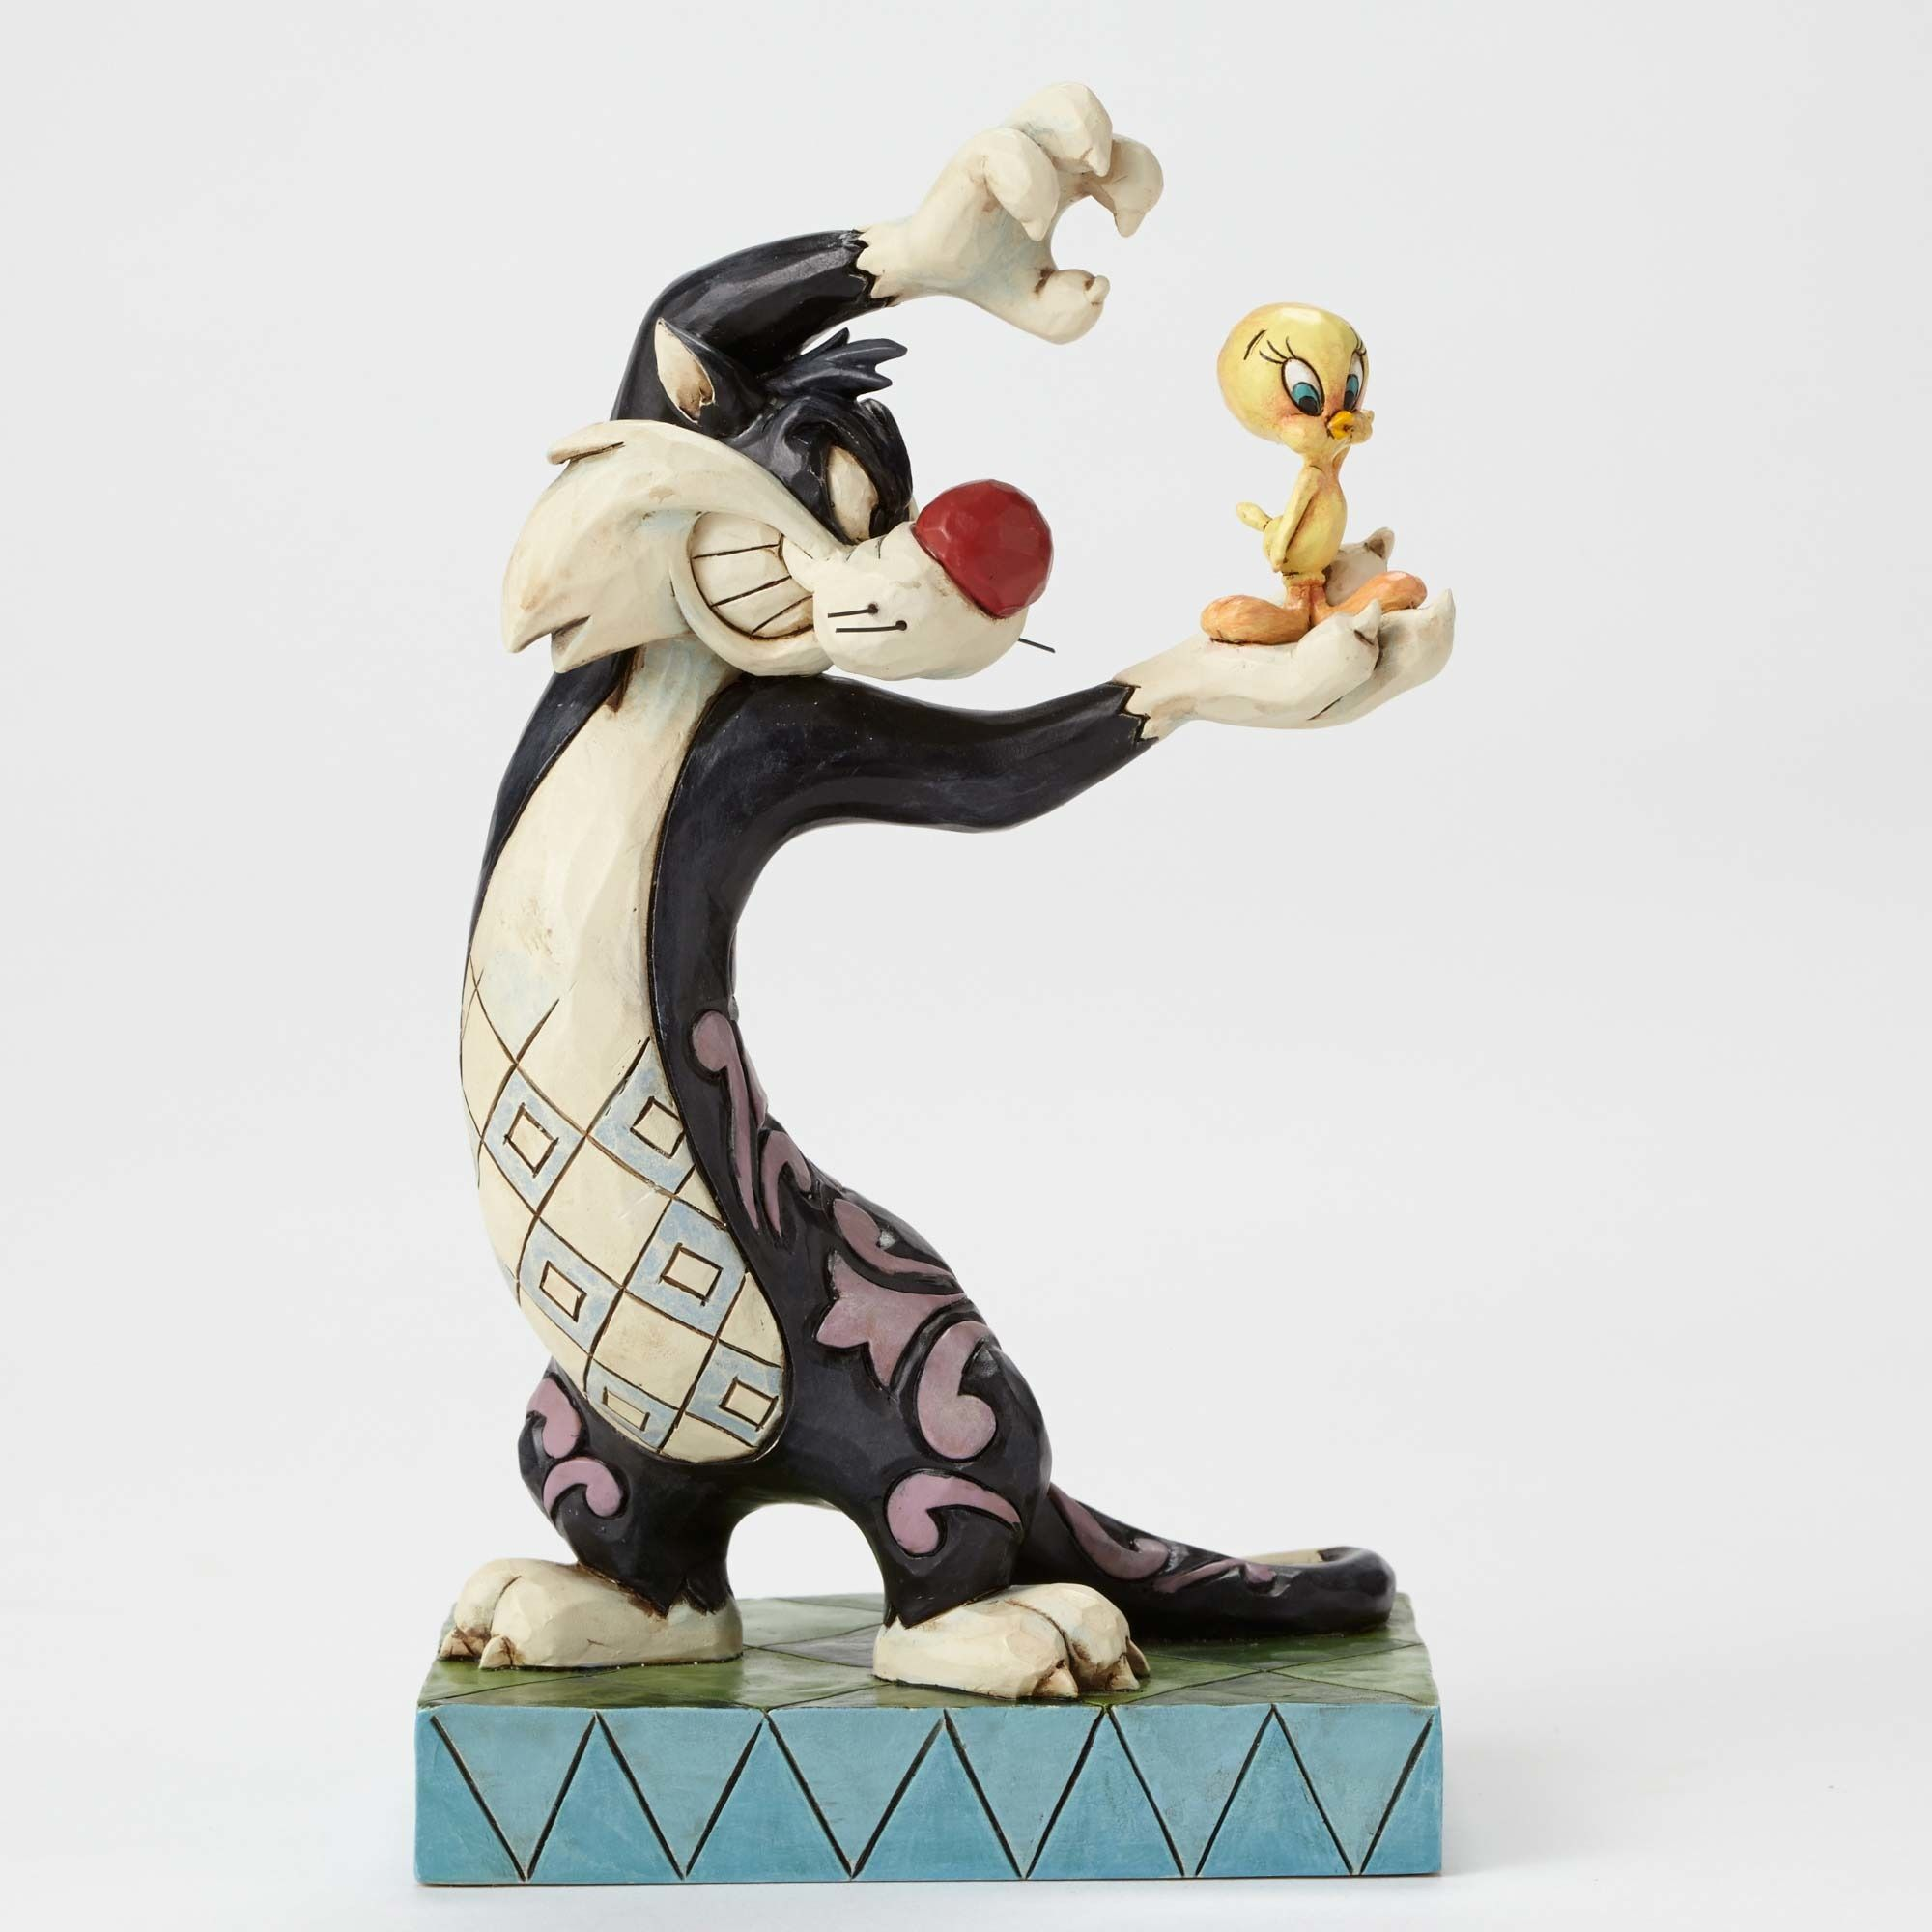 Sylvester eyes a tasty morsel he'll never be able to catch in this wishful-thinking design from Jim Shore's whimsical new collection featuring the beloved characters from the classic Looney Tunes cartoons.